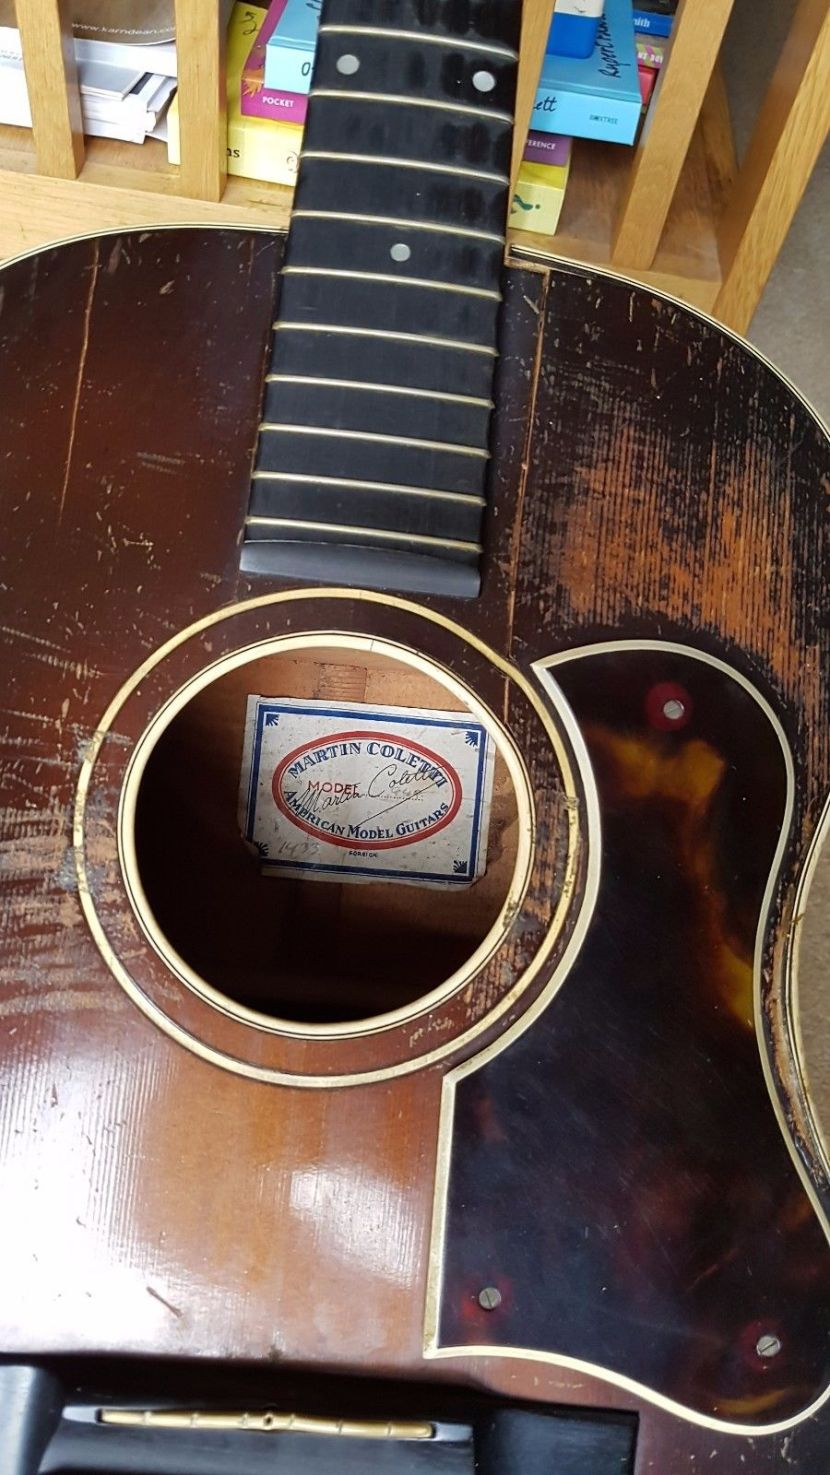 A well-played Martin Coletti G40 guitar. Top